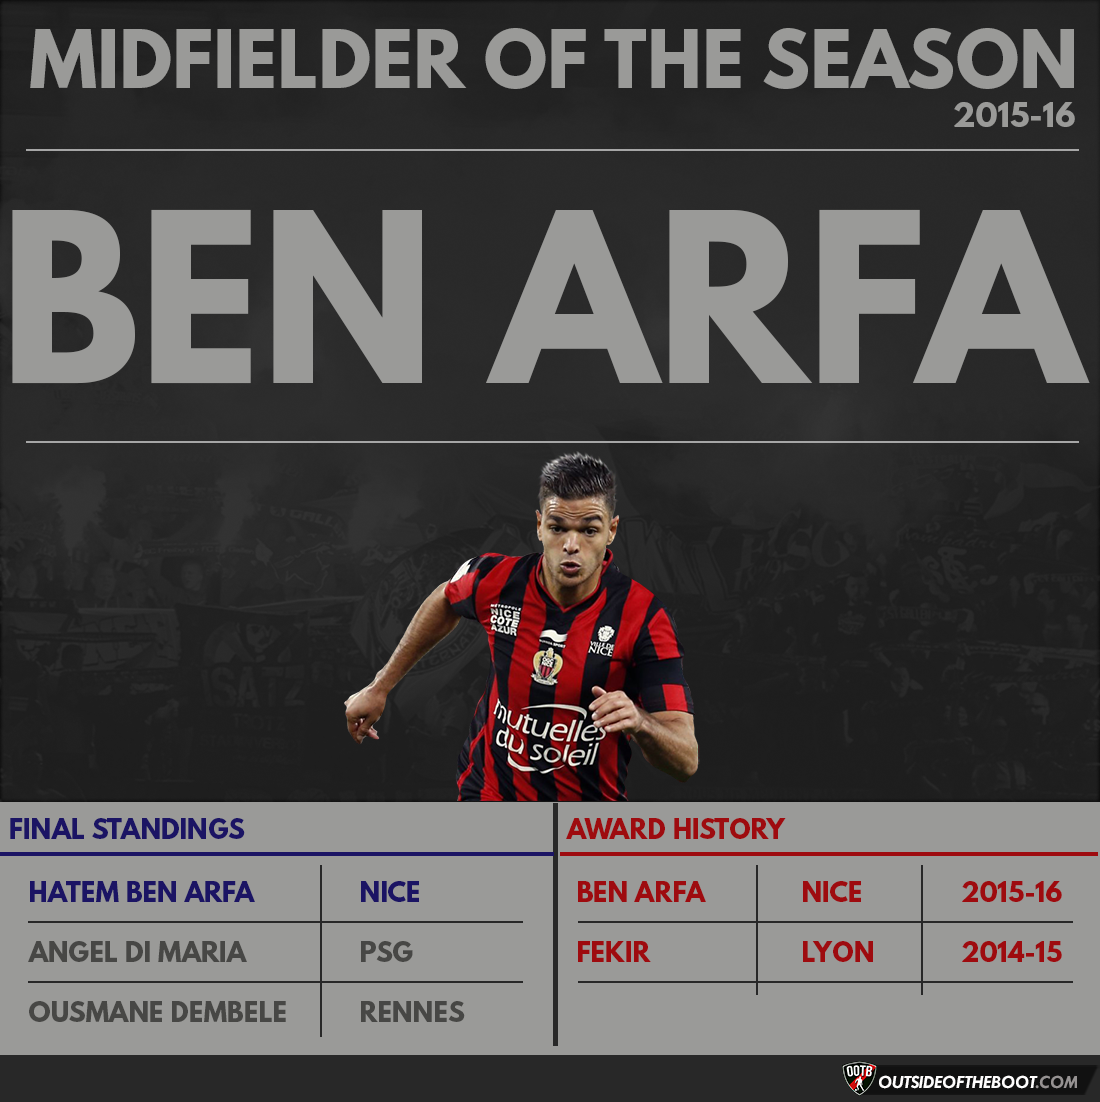 Ligue 1 Midfielder of the Season 2015-16